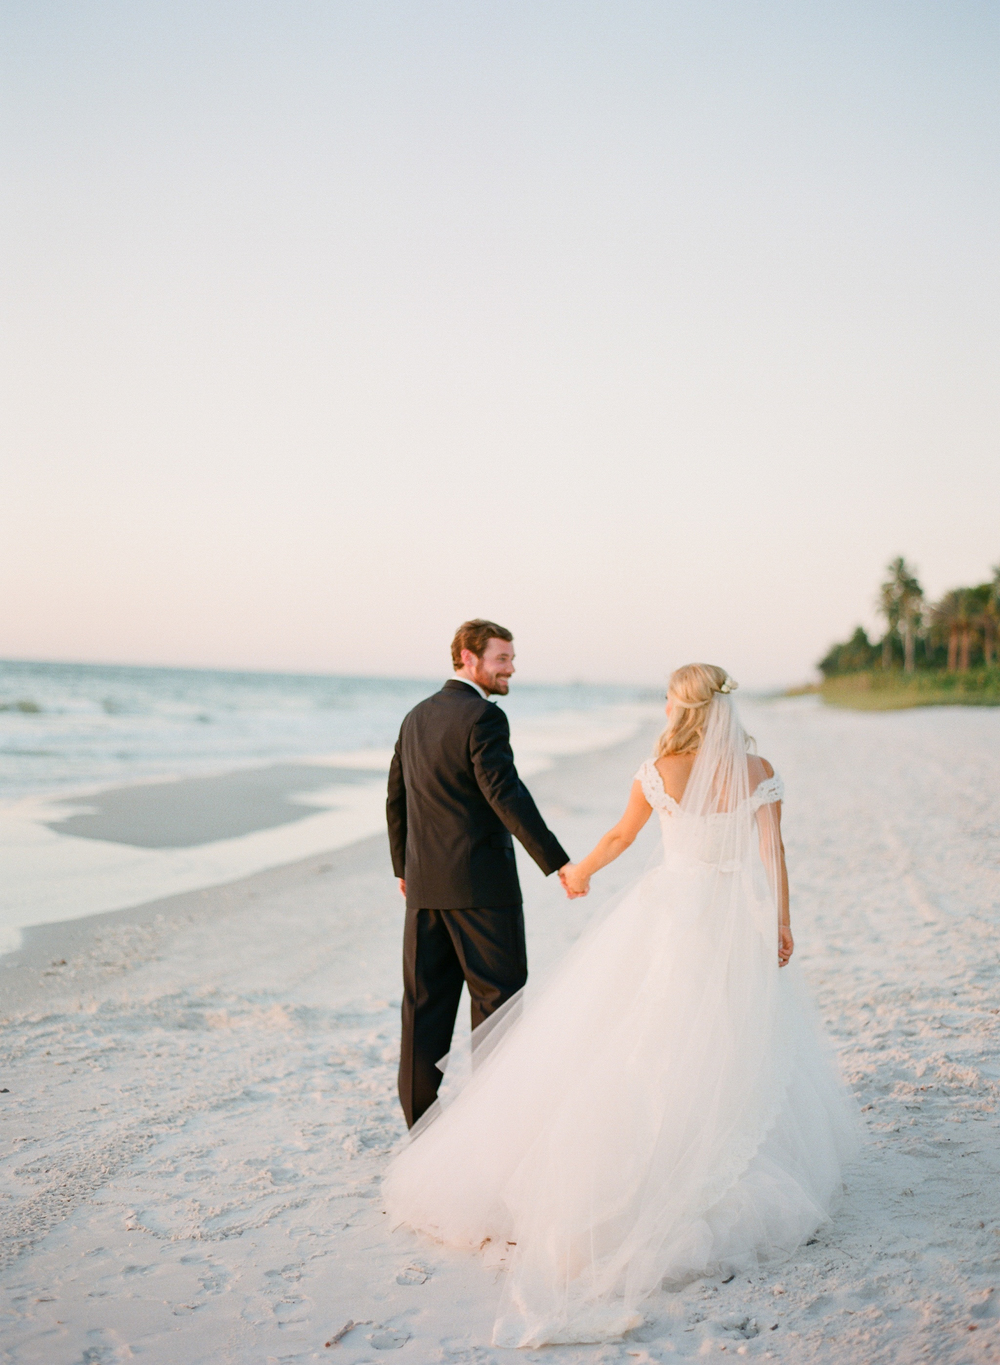 Ceci_New_York_Florida_Wedding_Style_Bride_Watercolor_Real_Custom_Luxury_92.jpg